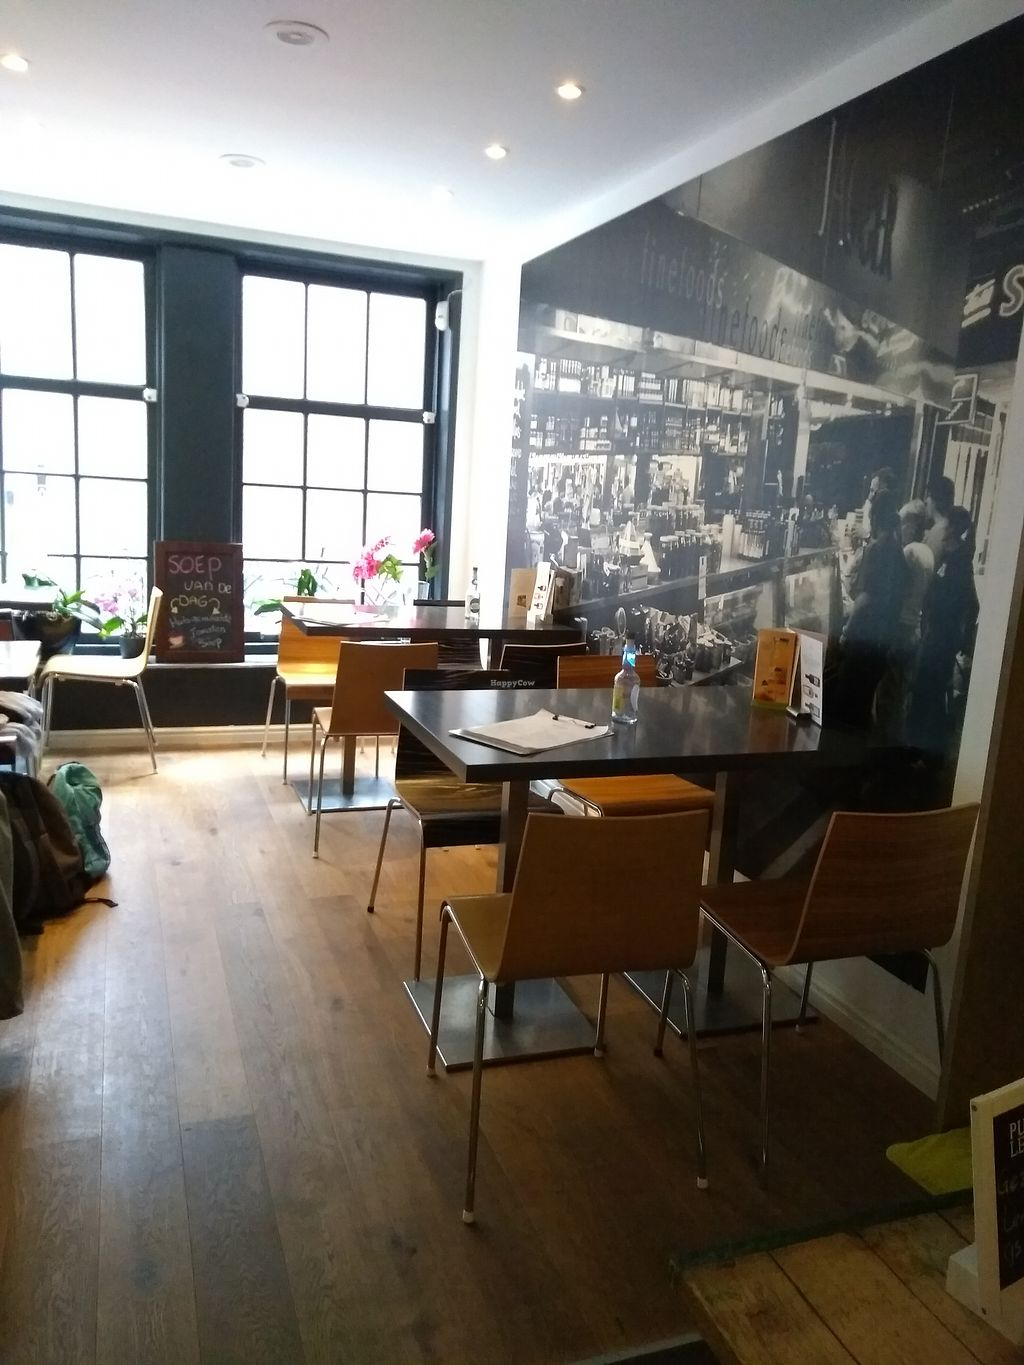 """Photo of Anna's Lunchroom  by <a href=""""/members/profile/thenaturalfusions"""">thenaturalfusions</a> <br/>inside room <br/> August 22, 2017  - <a href='/contact/abuse/image/90988/295815'>Report</a>"""